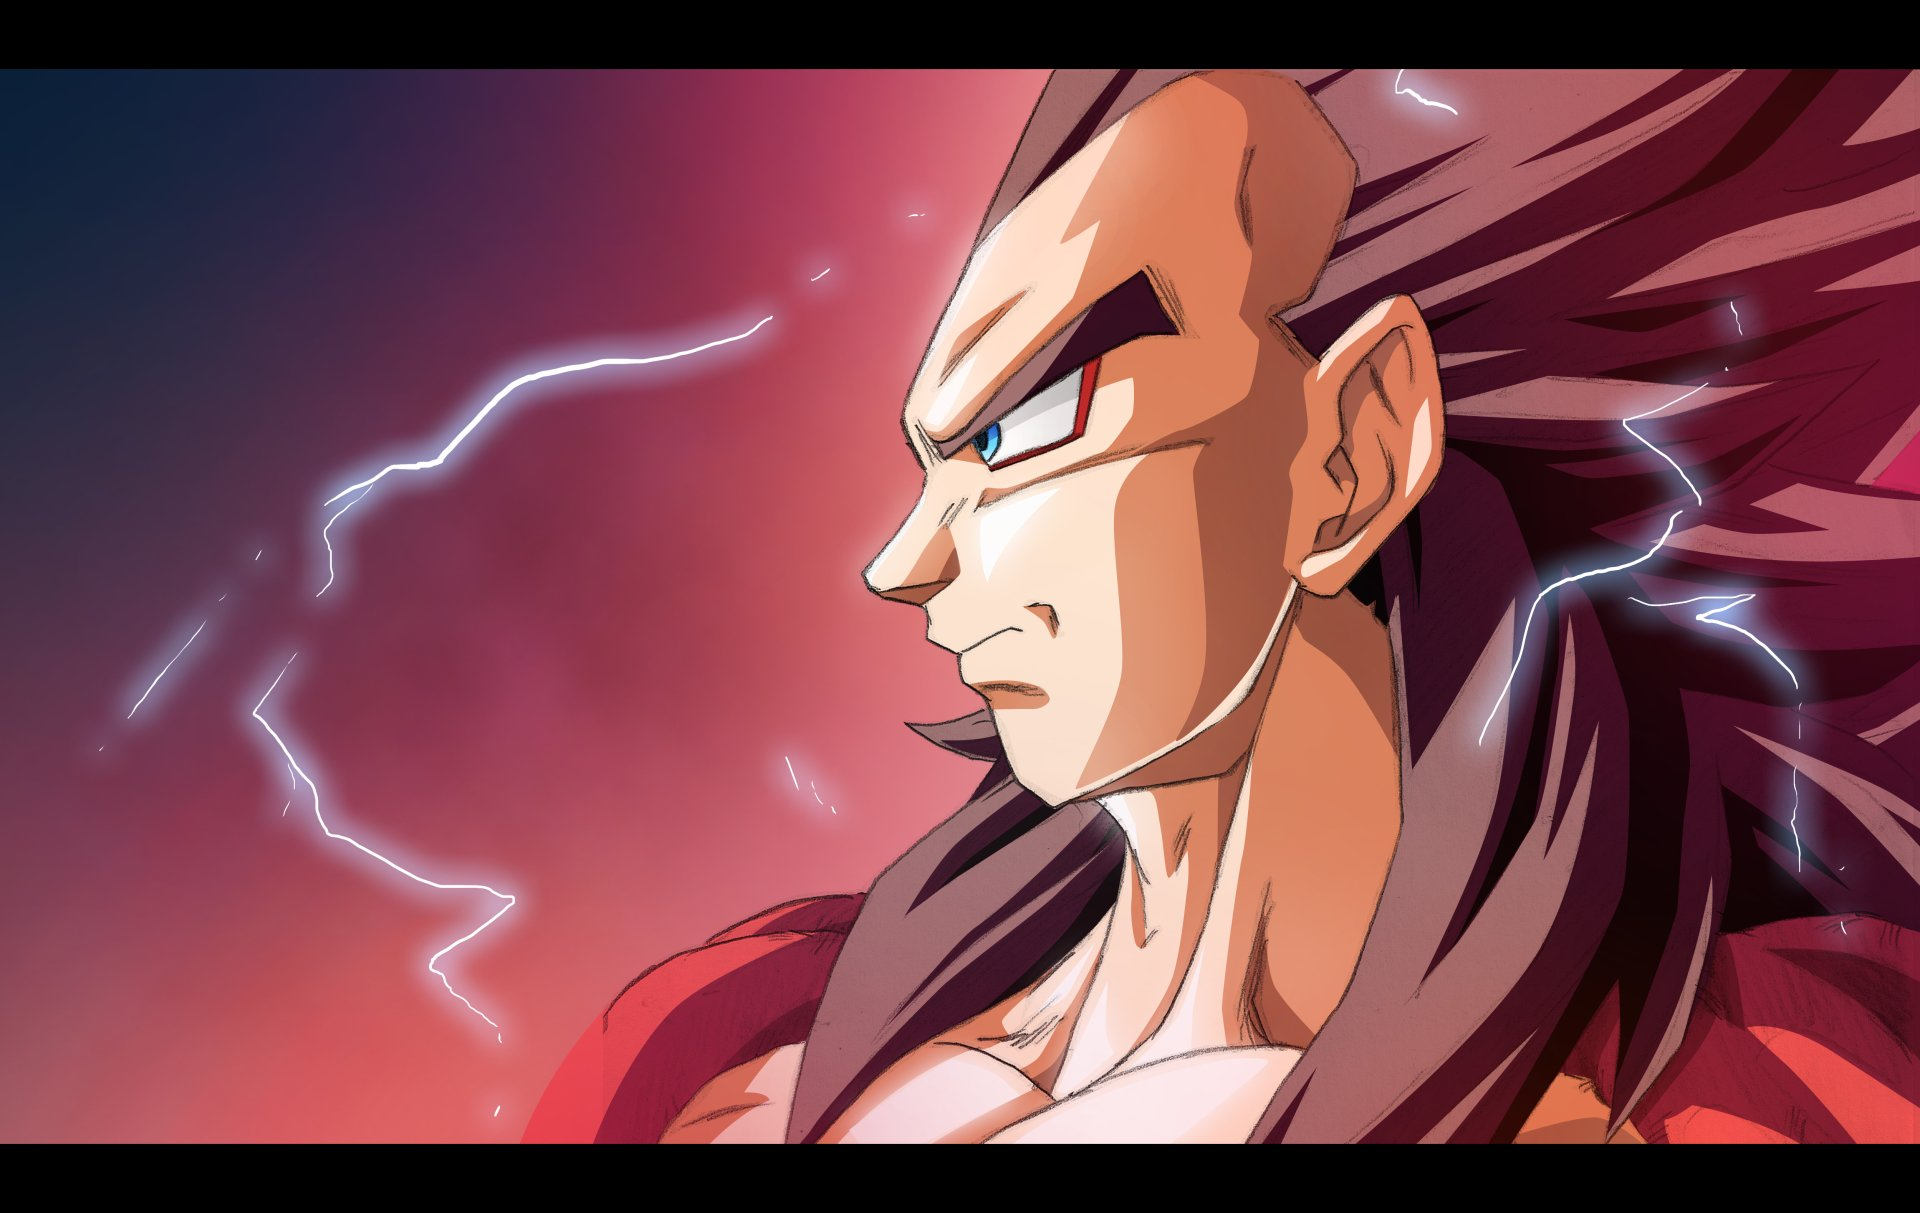 Vegeta ssj4 4k ultra hd wallpaper background image - Dragon ball gt goku wallpaper ...